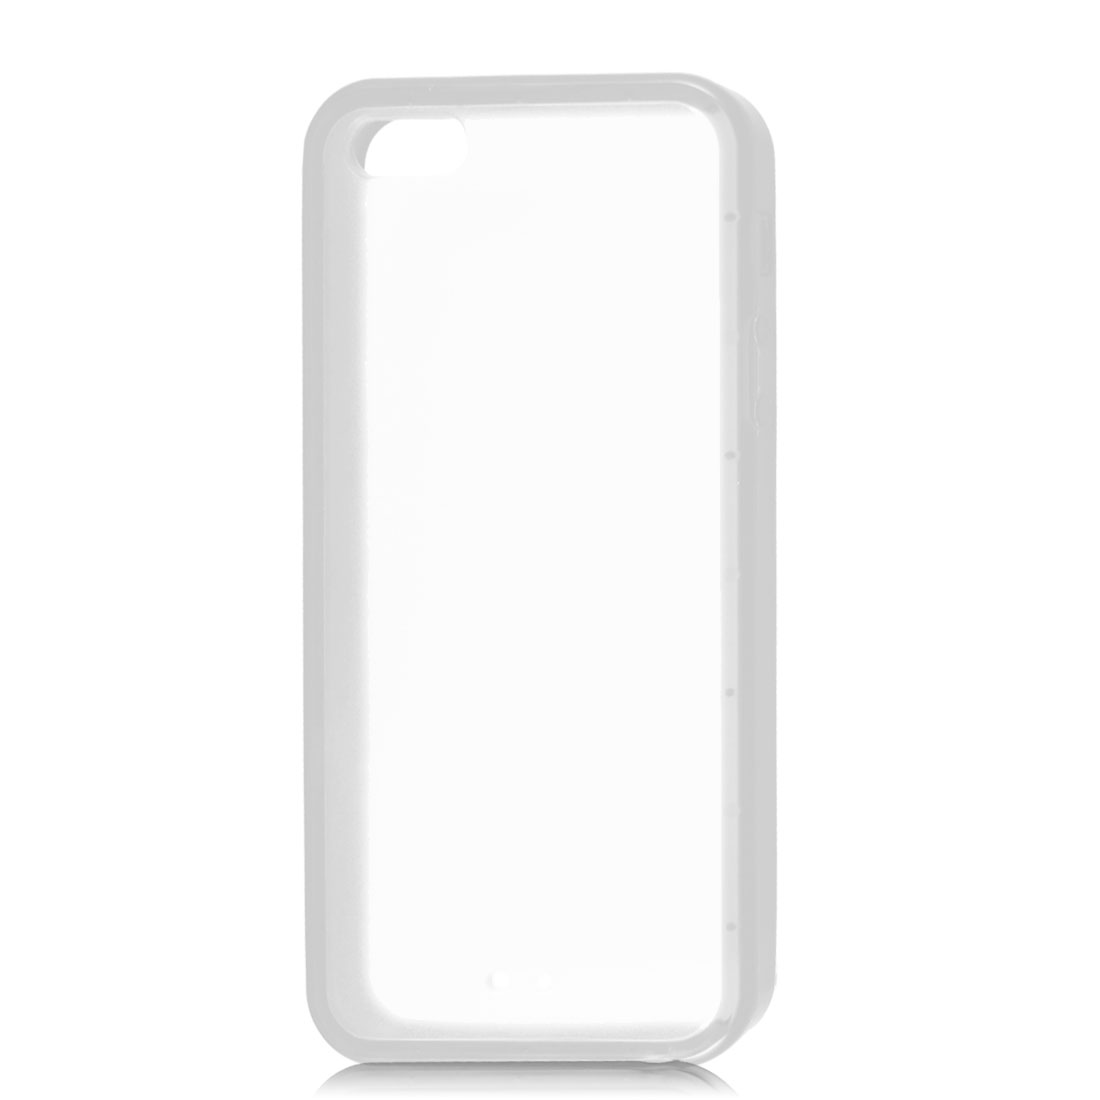 Clear Hard Back Soft Trim Plastic Protective Case Cover for iPhone 5 5G